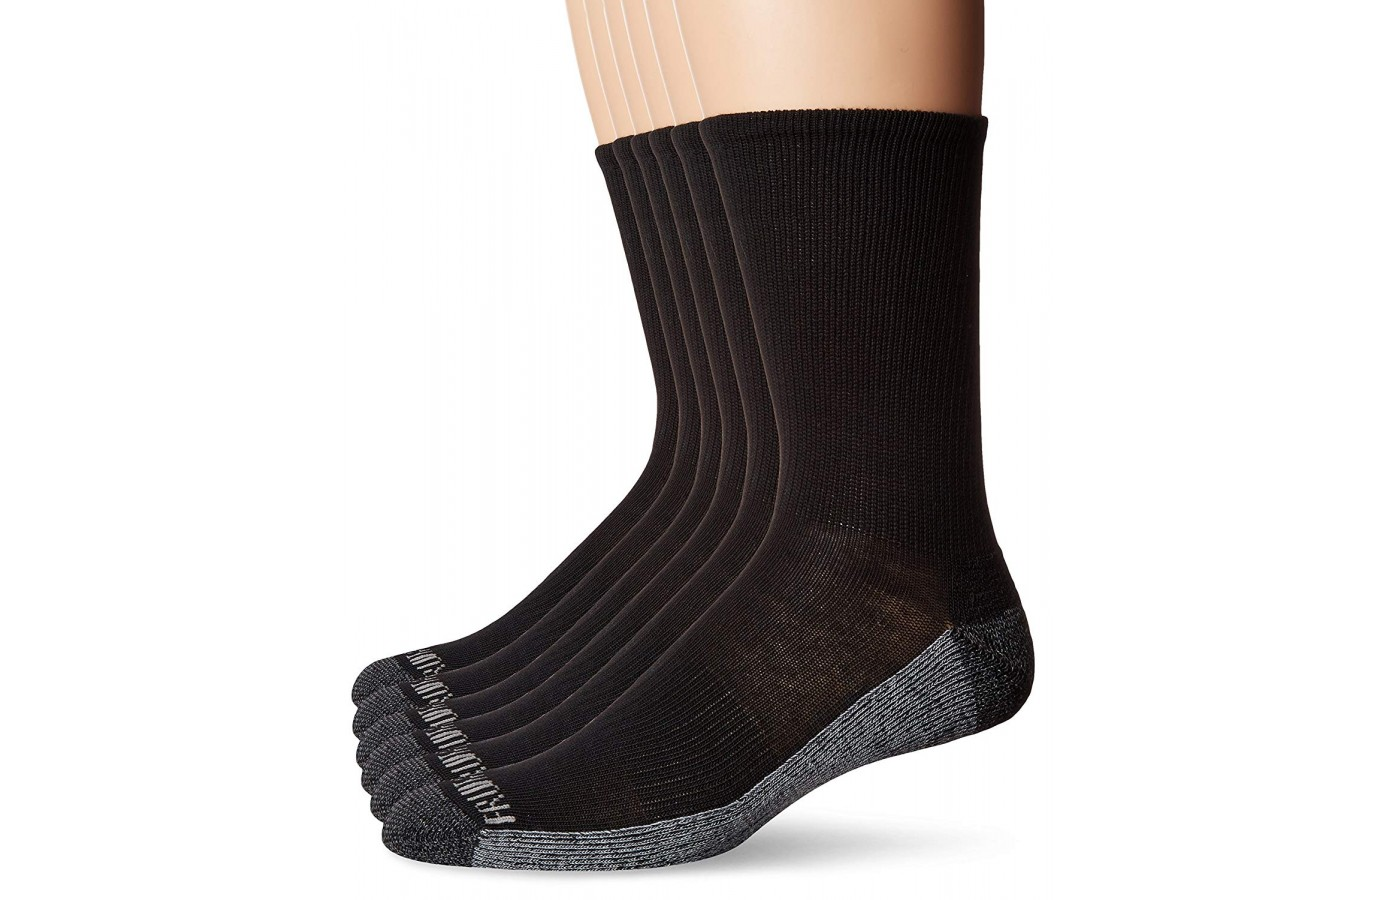 Fruit of the Loom Crew Socks black